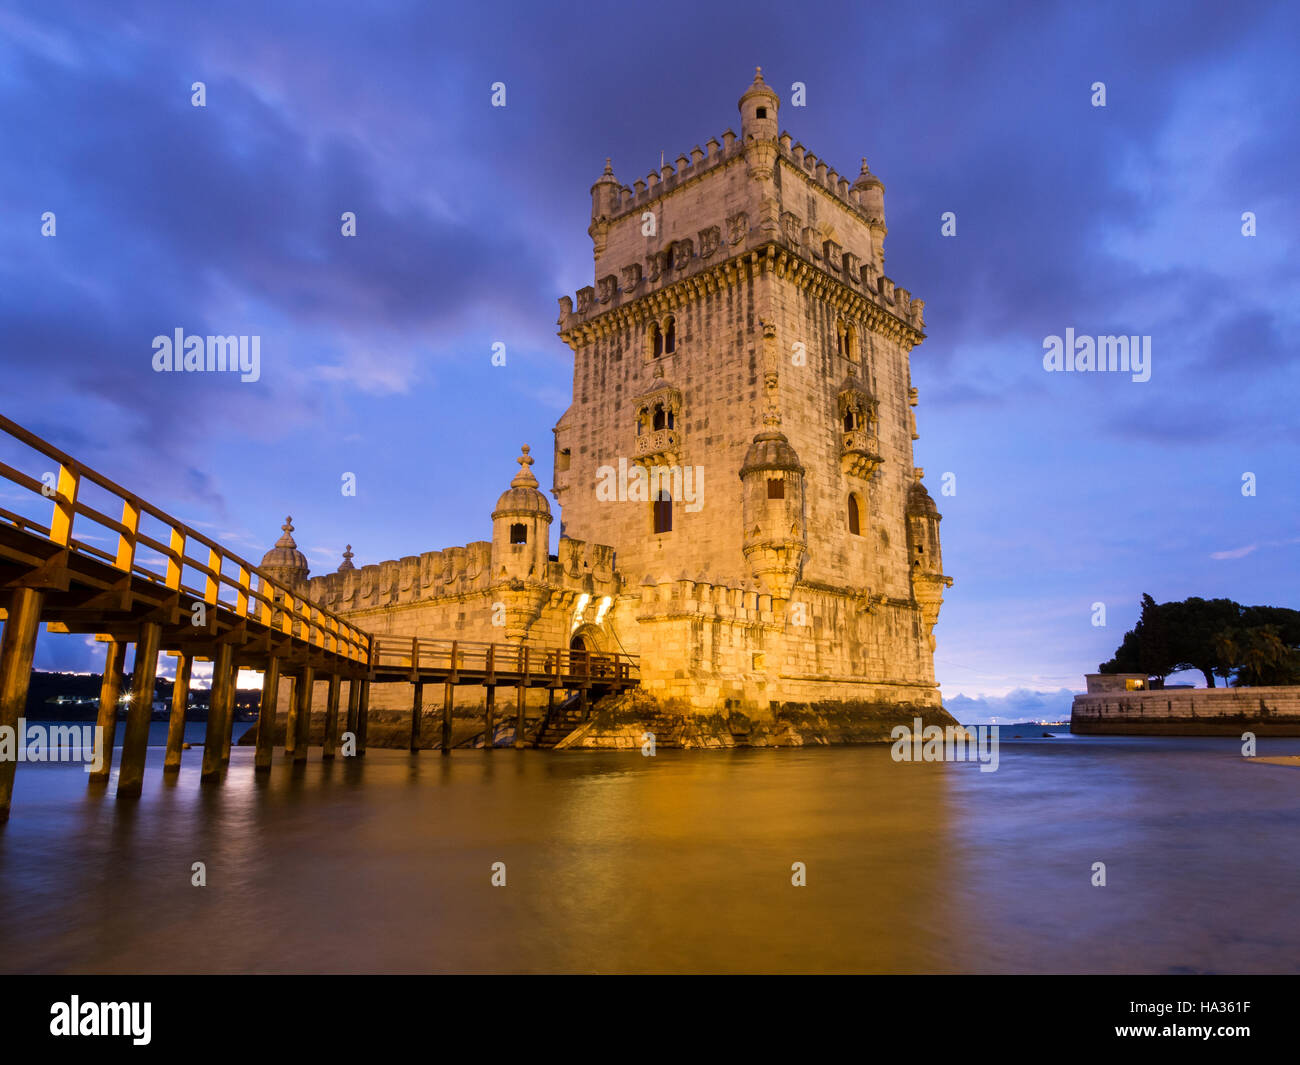 Torre de Belem on the bank of Tagus river in Lisbon, Portugal, at night. Stock Photo